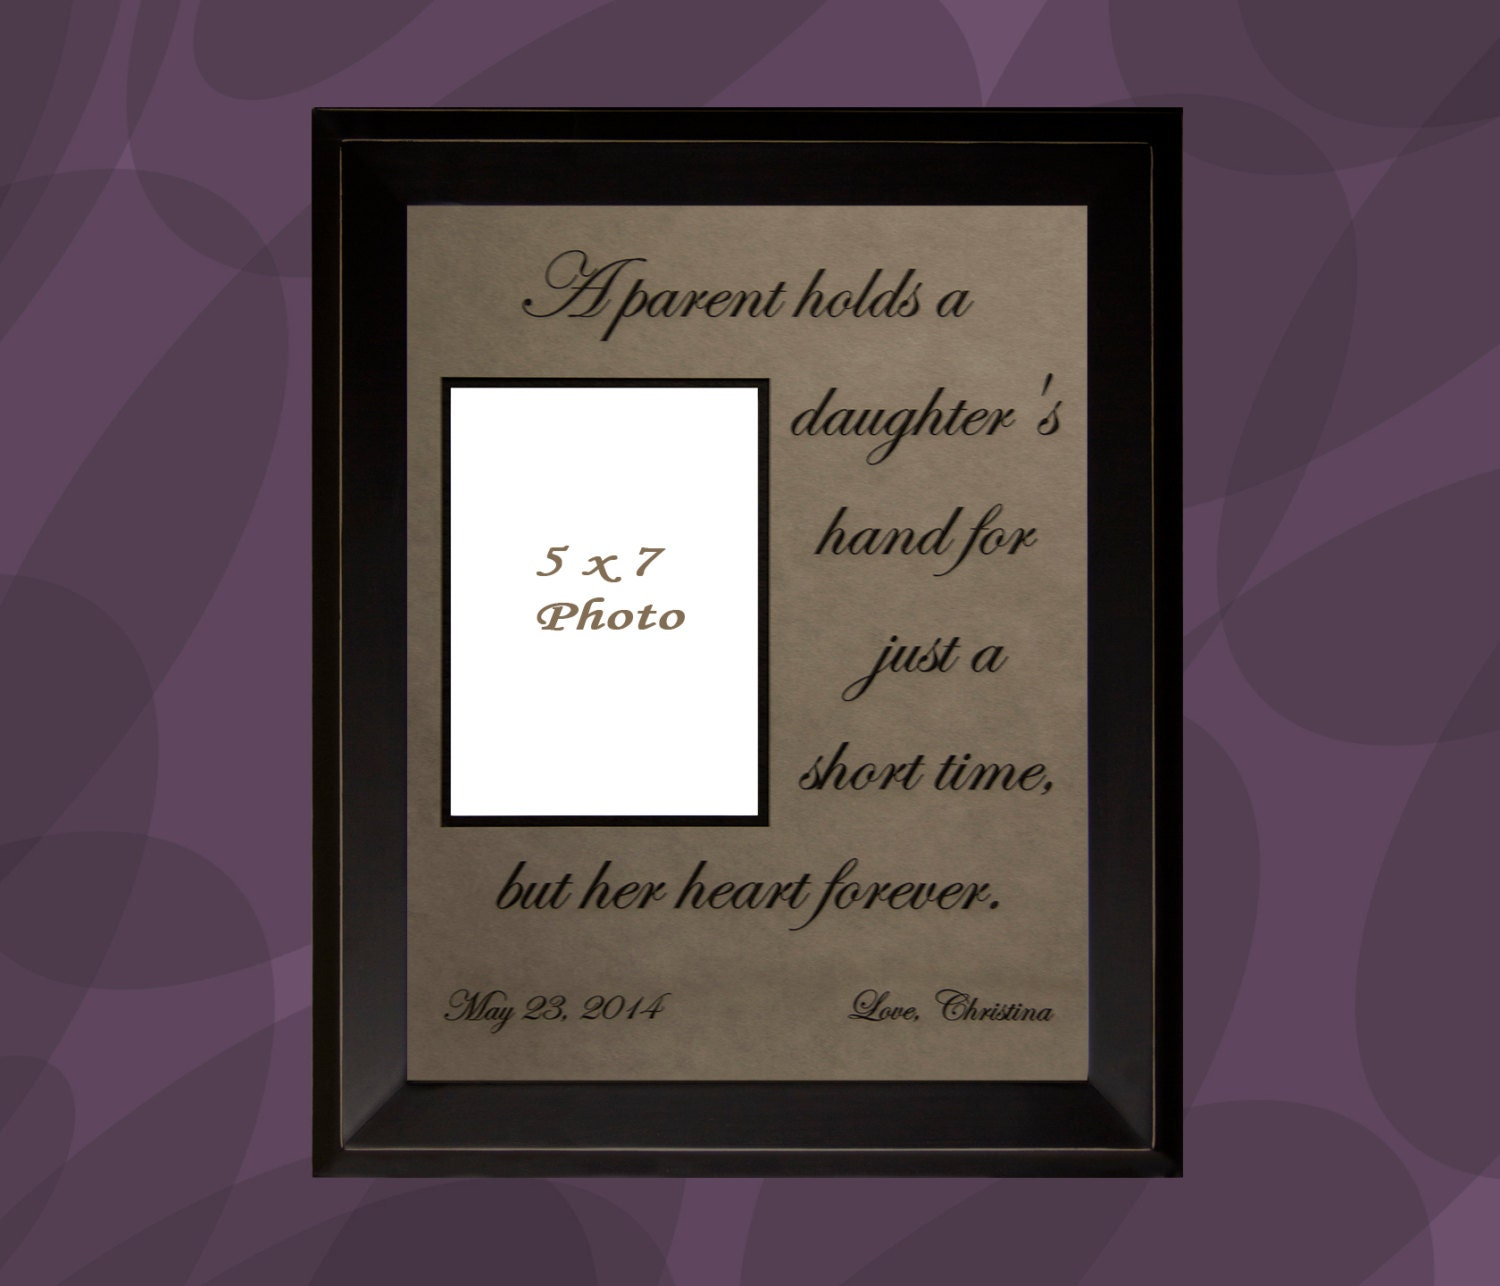 Wedding Gifts For Parents Photo Frames : Gift for Parents Personalized Picture Frame Wedding Gift for